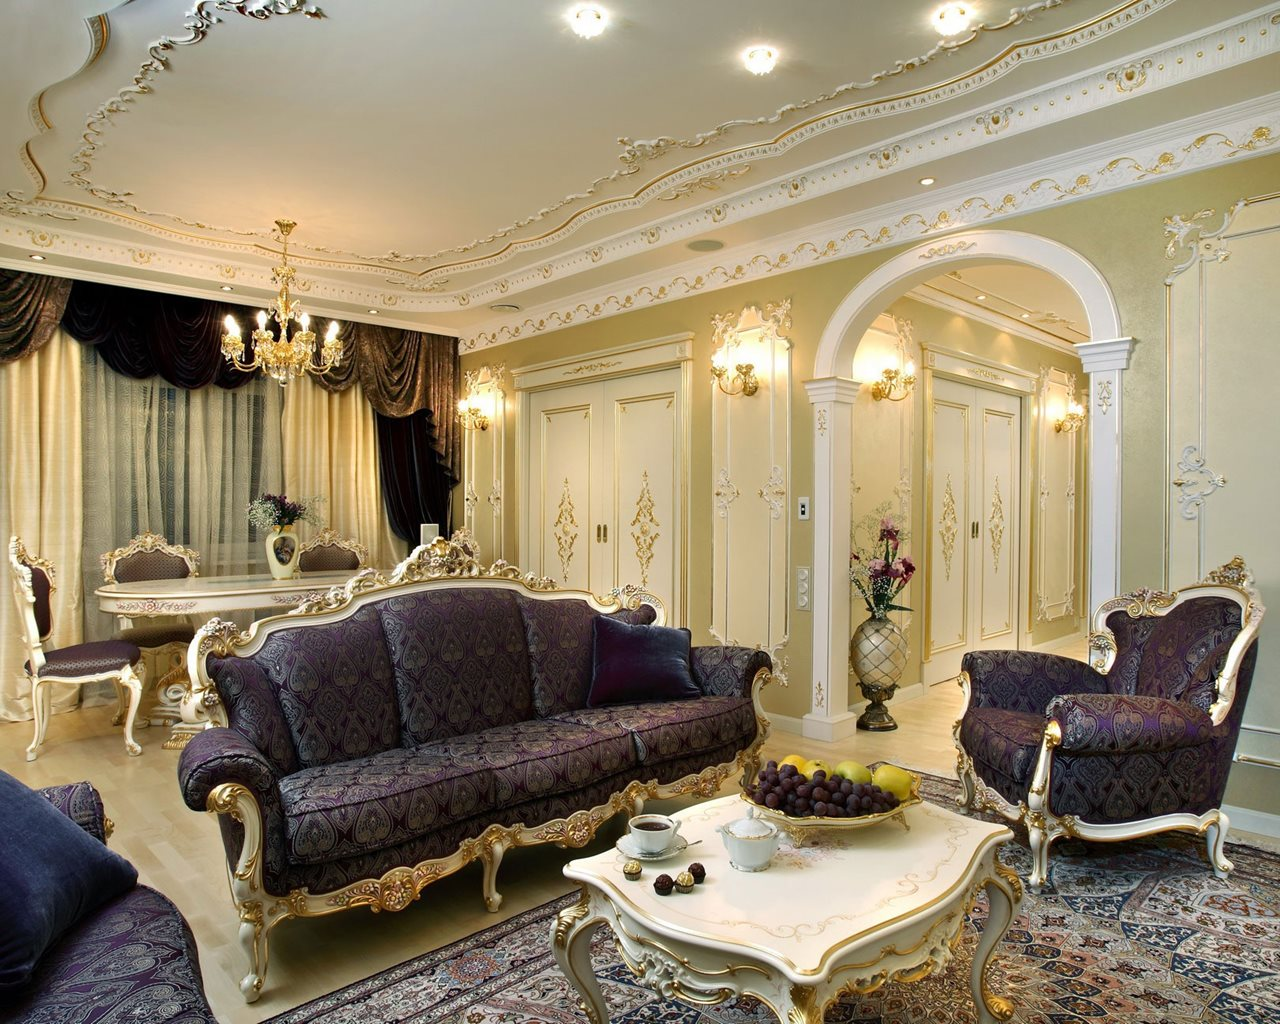 Baroque style interior design ideas for Interior design styles photos